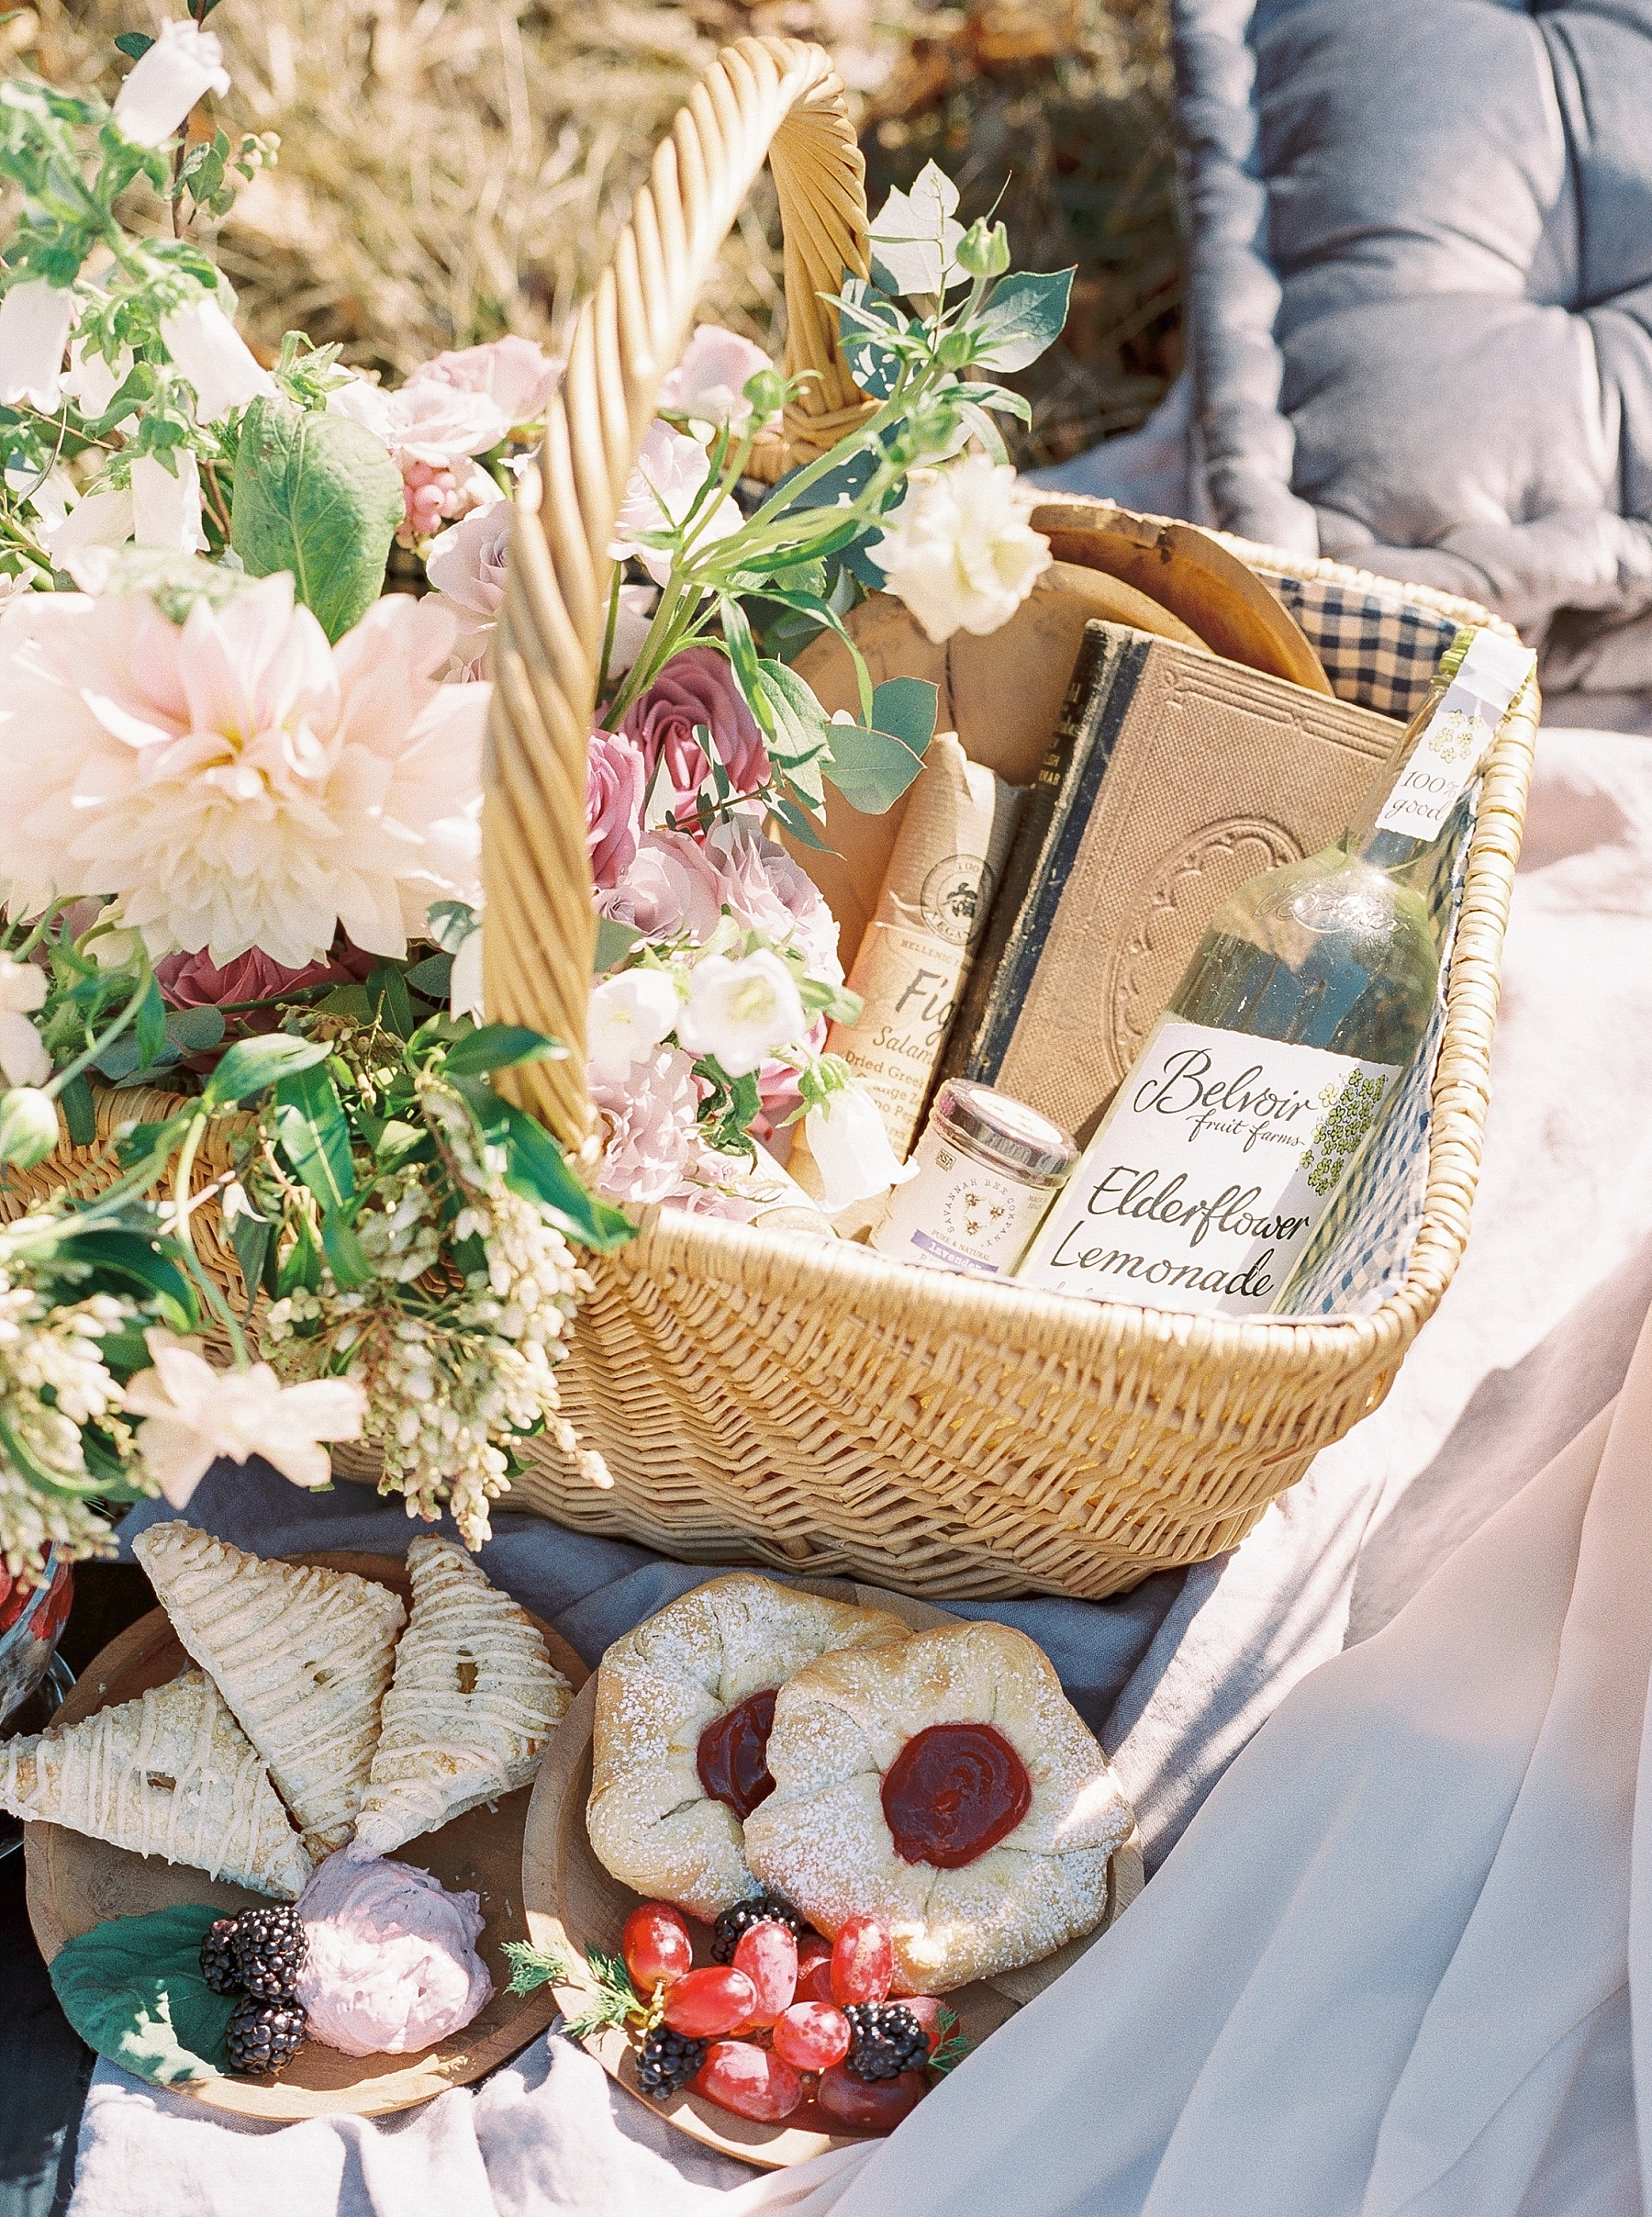 Late Fall Farm-to-table Inspired Brunch Picnic Engagement Session During Wedding Weekend by Kelsi Kliethermes Photography Best Missouri and Maui Wedding Photographer_0022.jpg